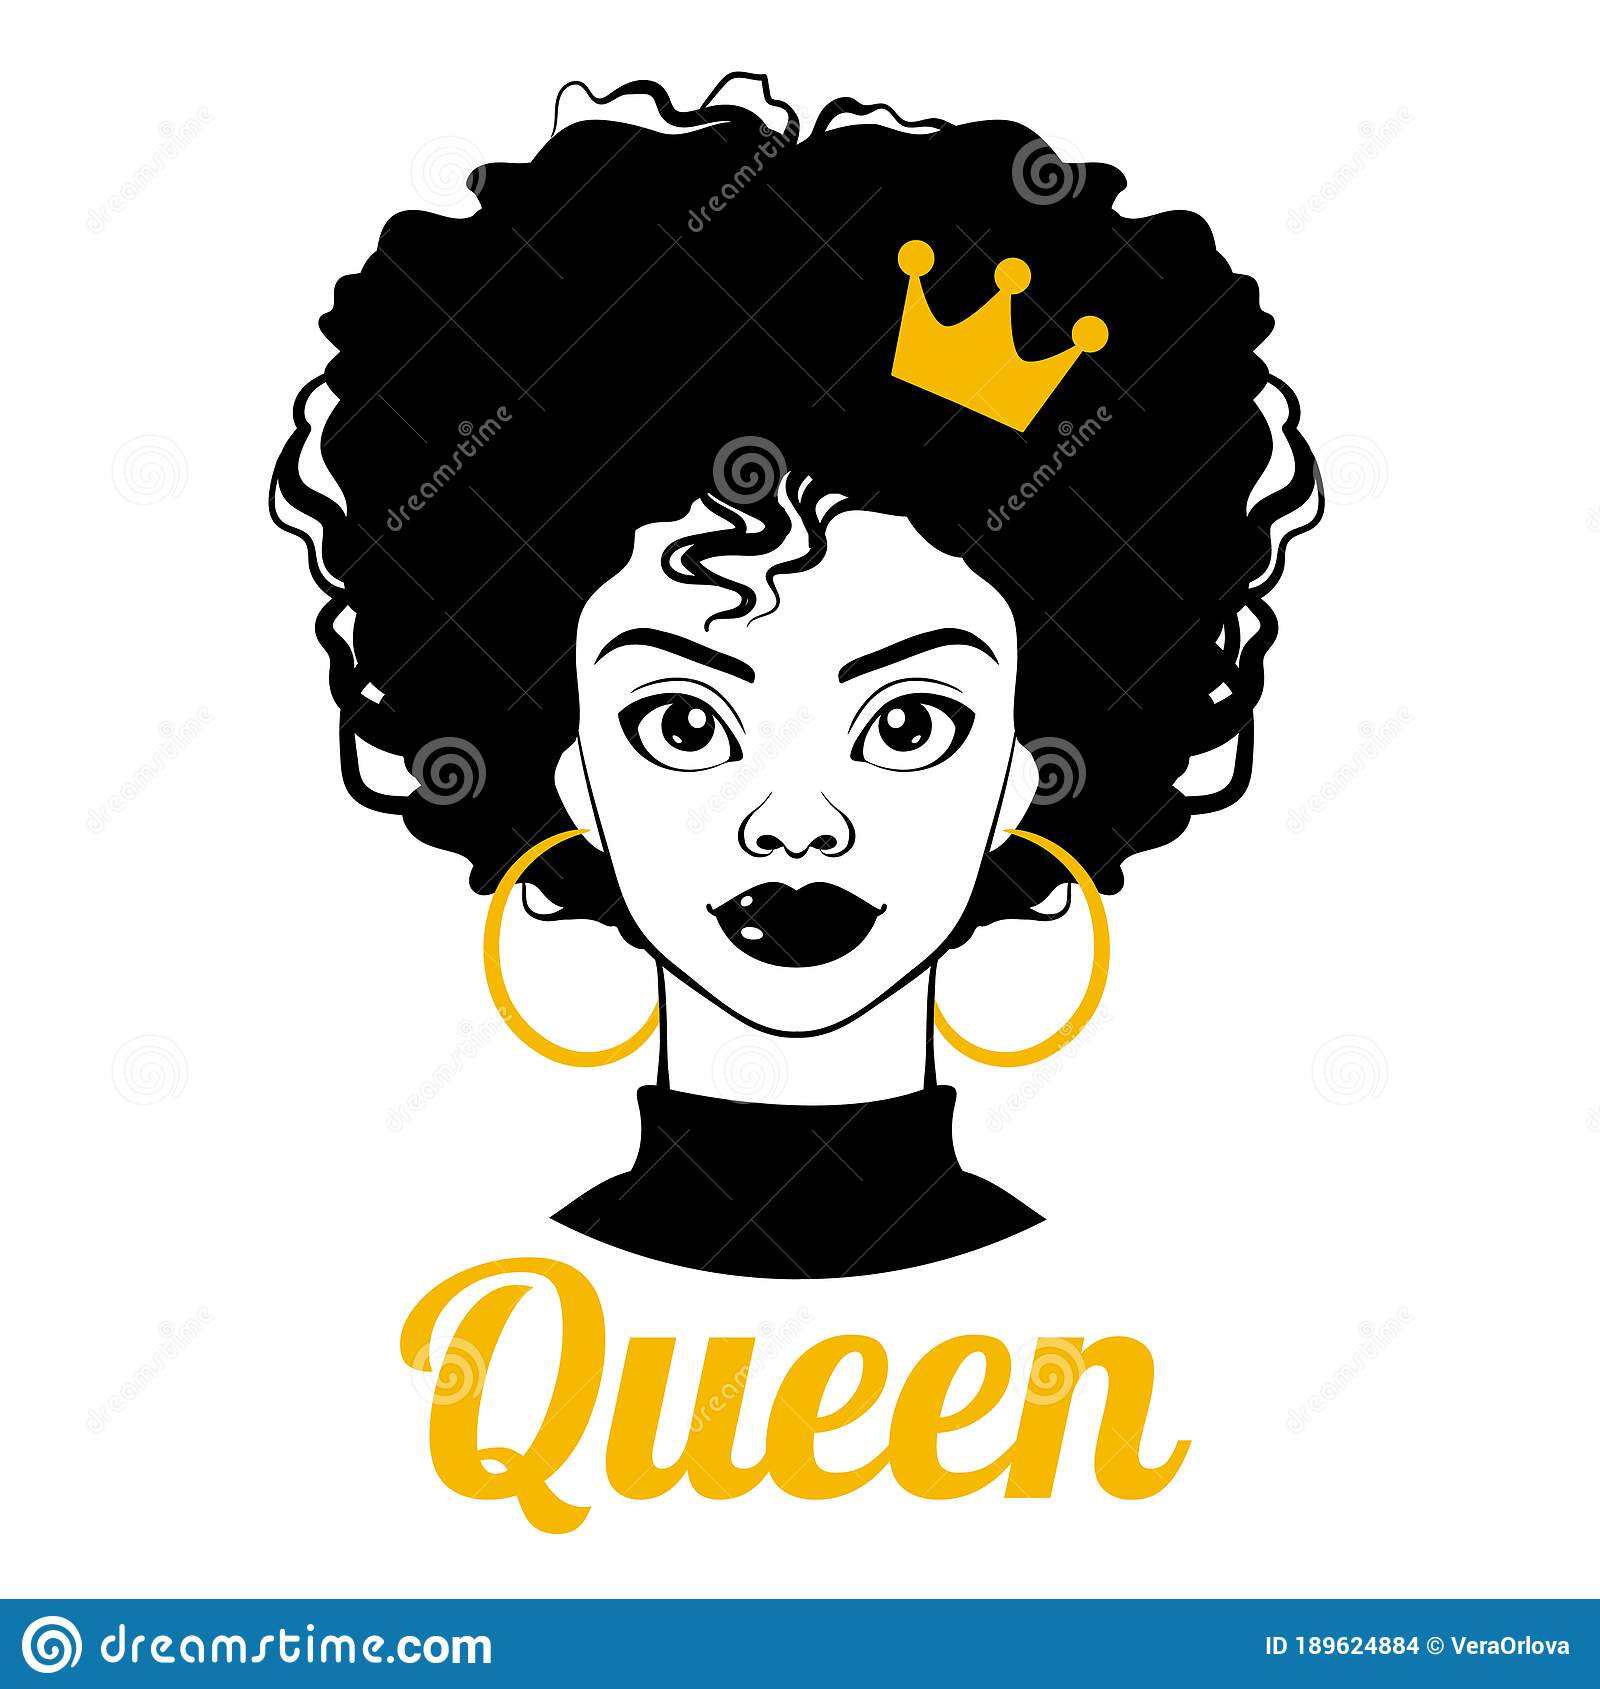 With clipart girl black afro Divas African